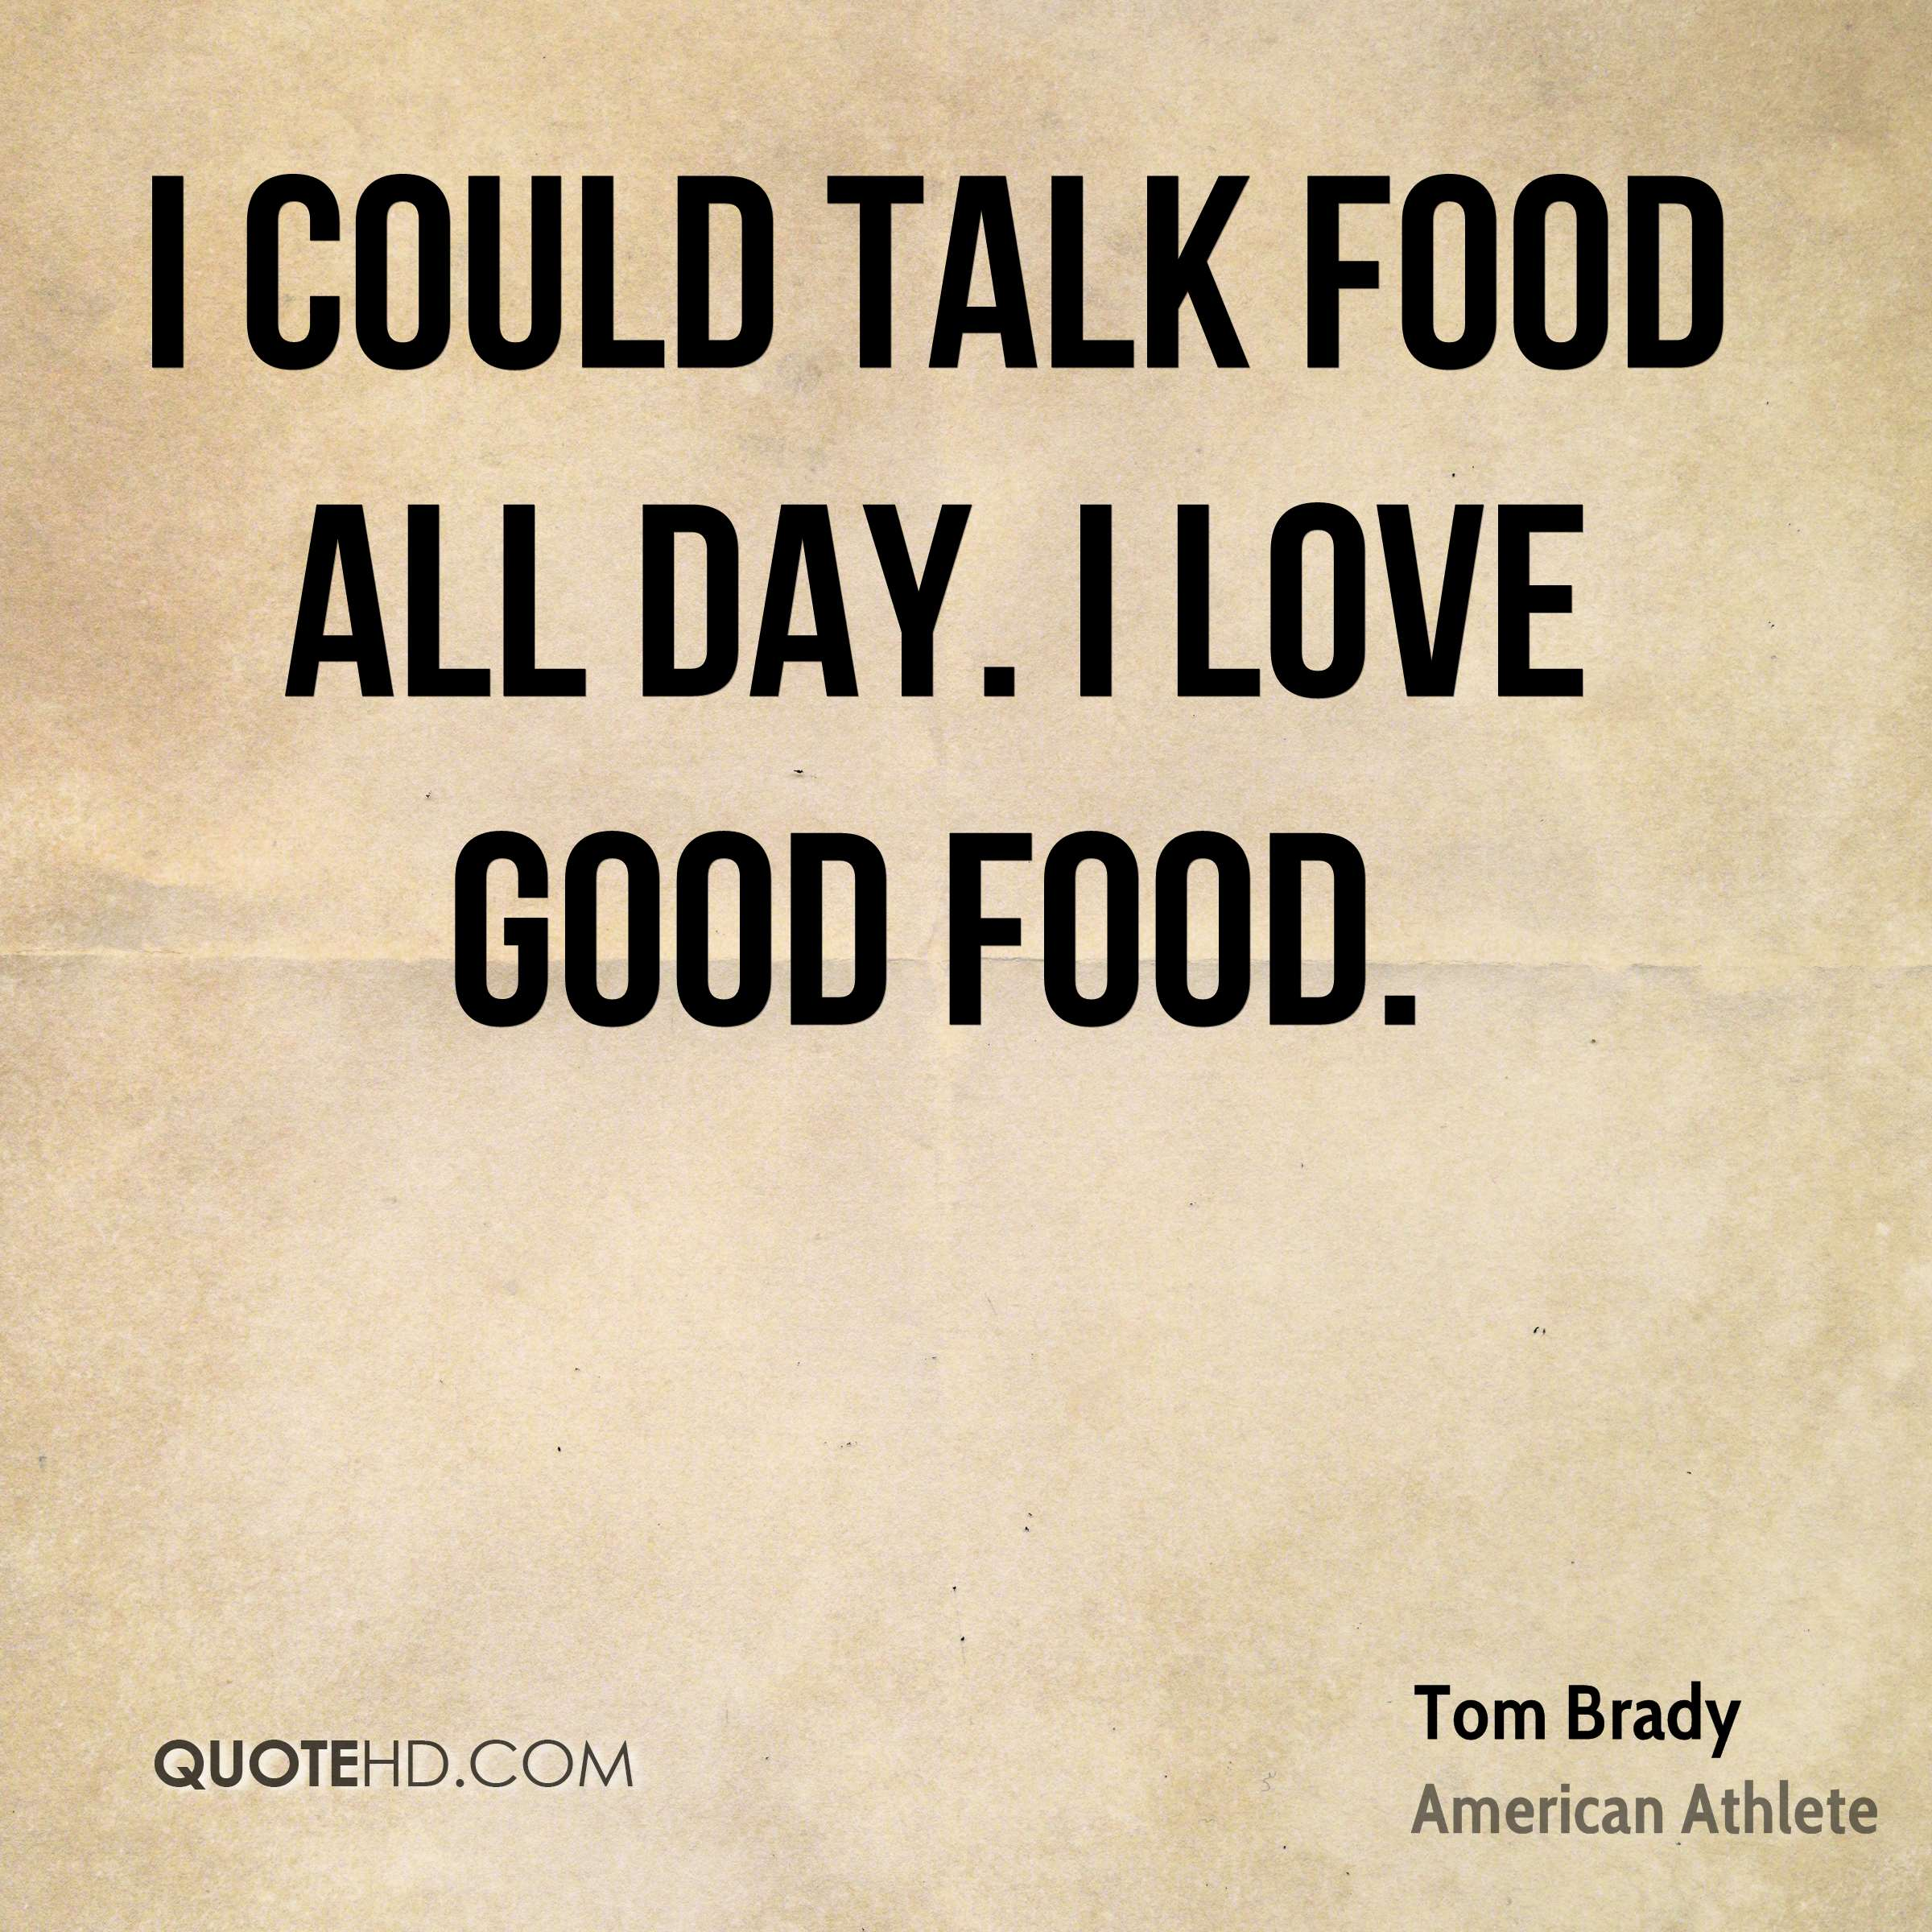 Good Quotes About Love Tom Brady Food Quotes  Quotehd